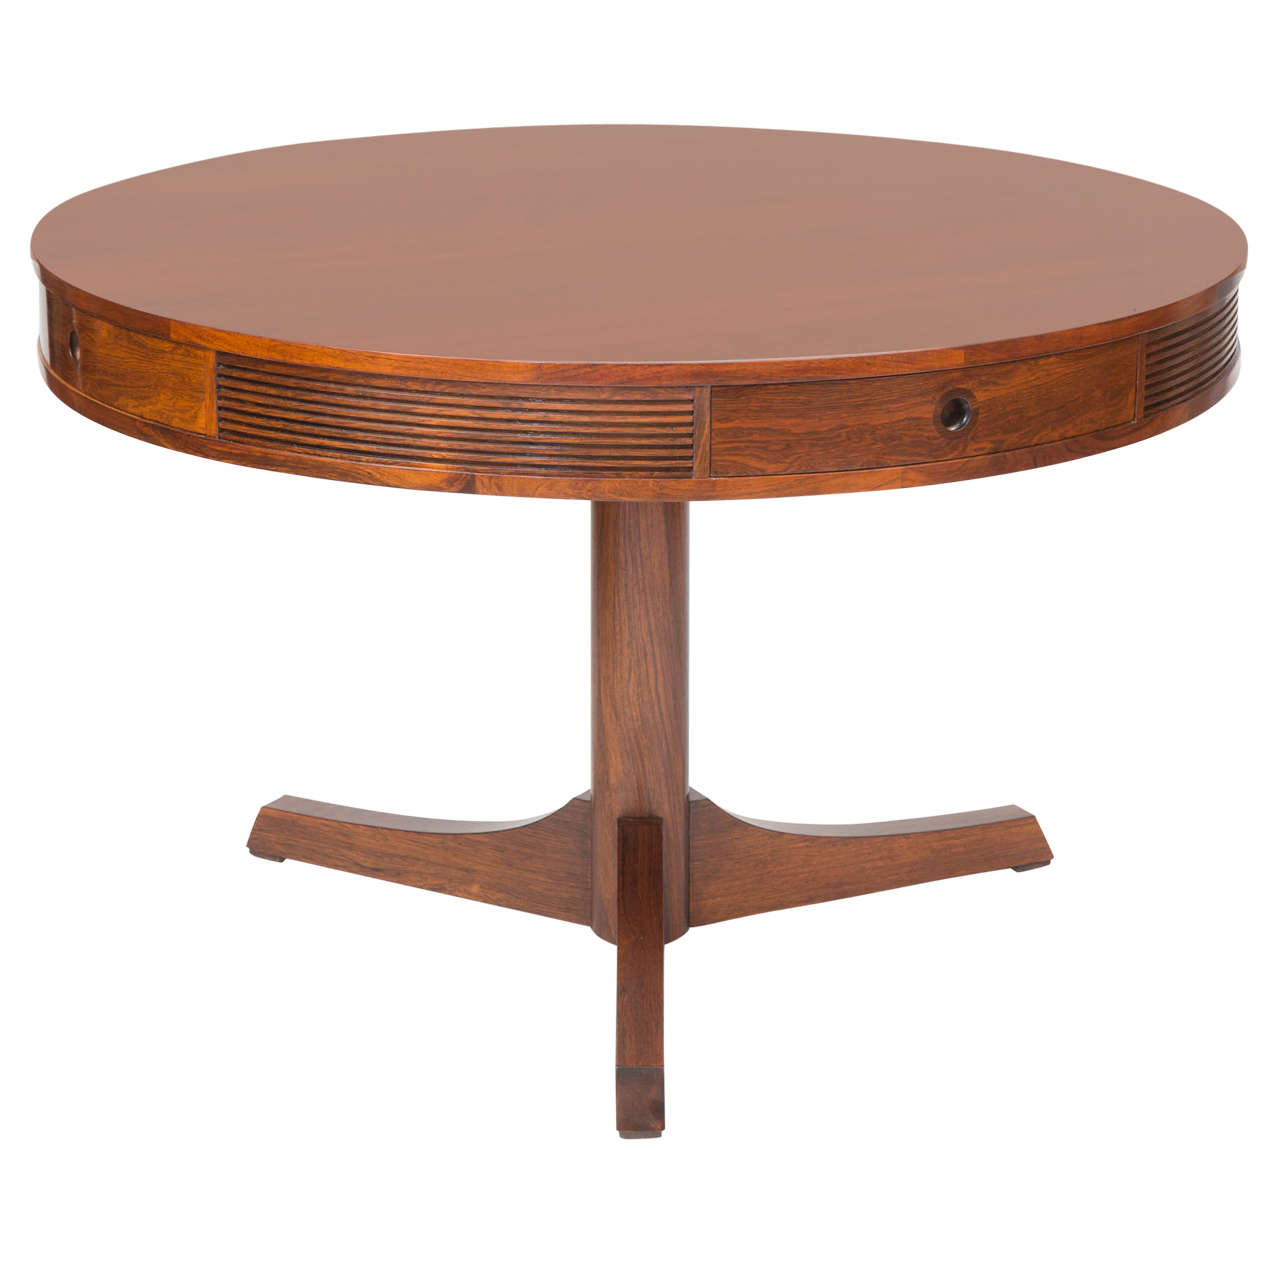 Superb img of  Heritage Rosewood Drum Table Made for Archie Shine For Sale at 1stdibs with #B0511B color and 1280x1280 pixels